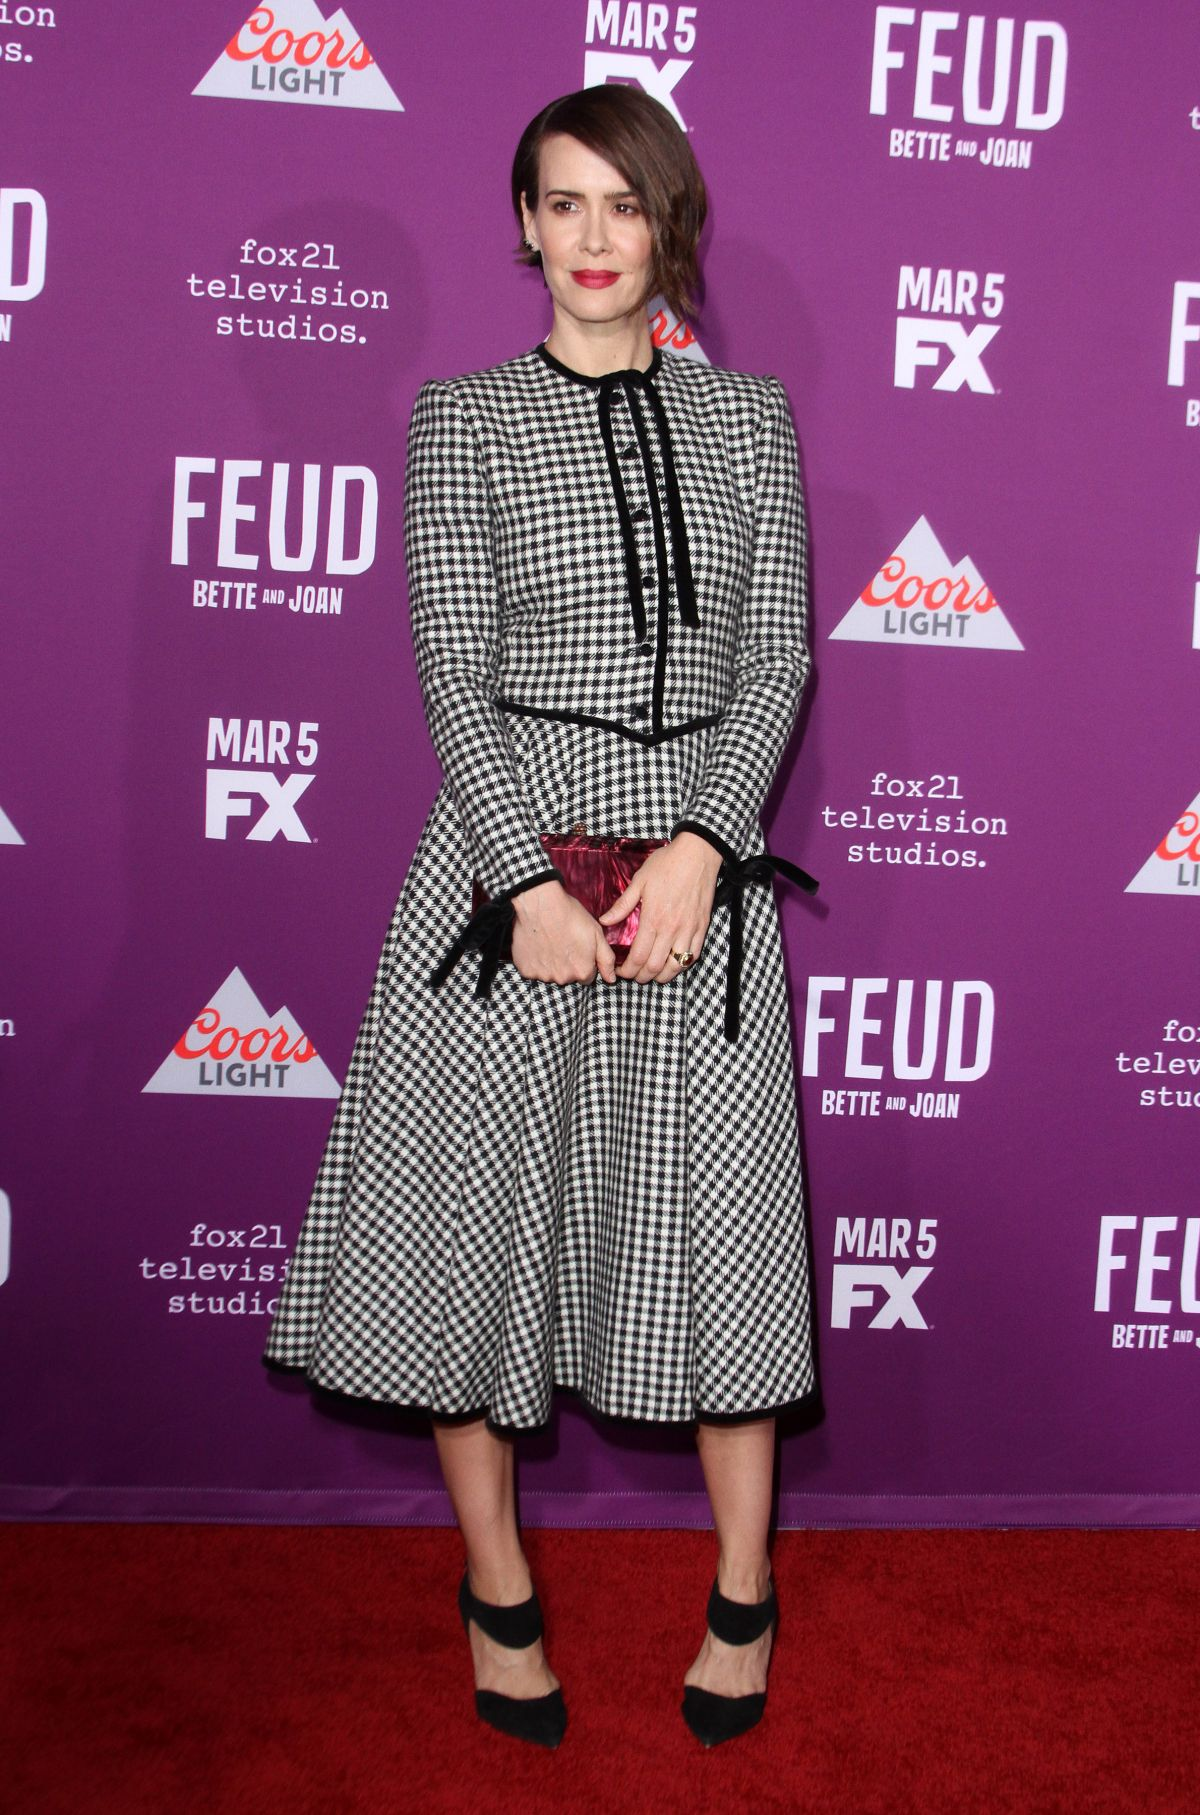 SARAH PAULSON at Feud: Bette and Joan Premiere in Los Angeles 03/01/2017